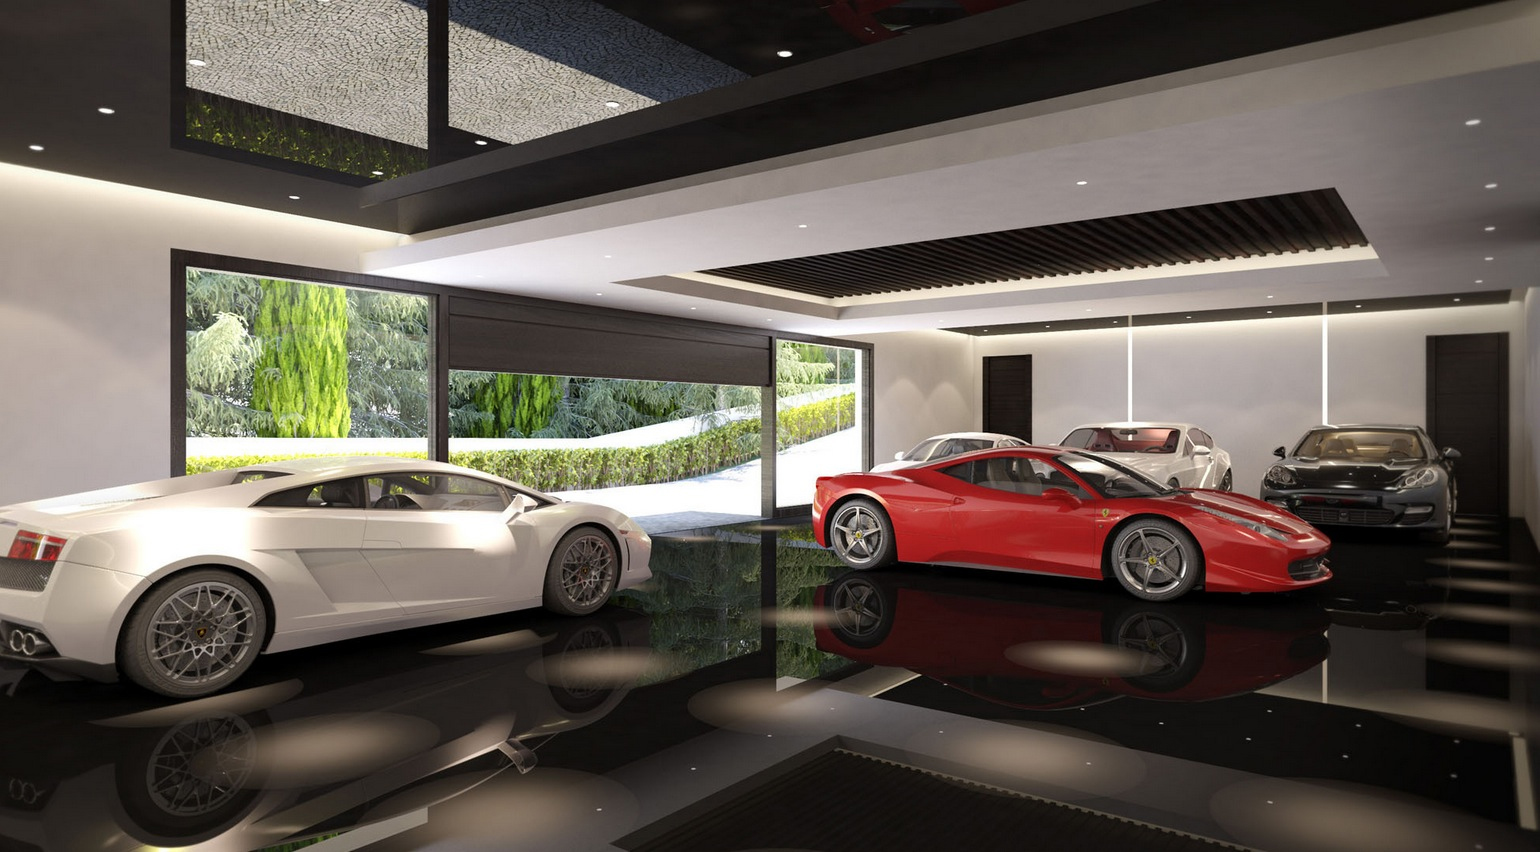 Private garage interior design ideas for Home garage design